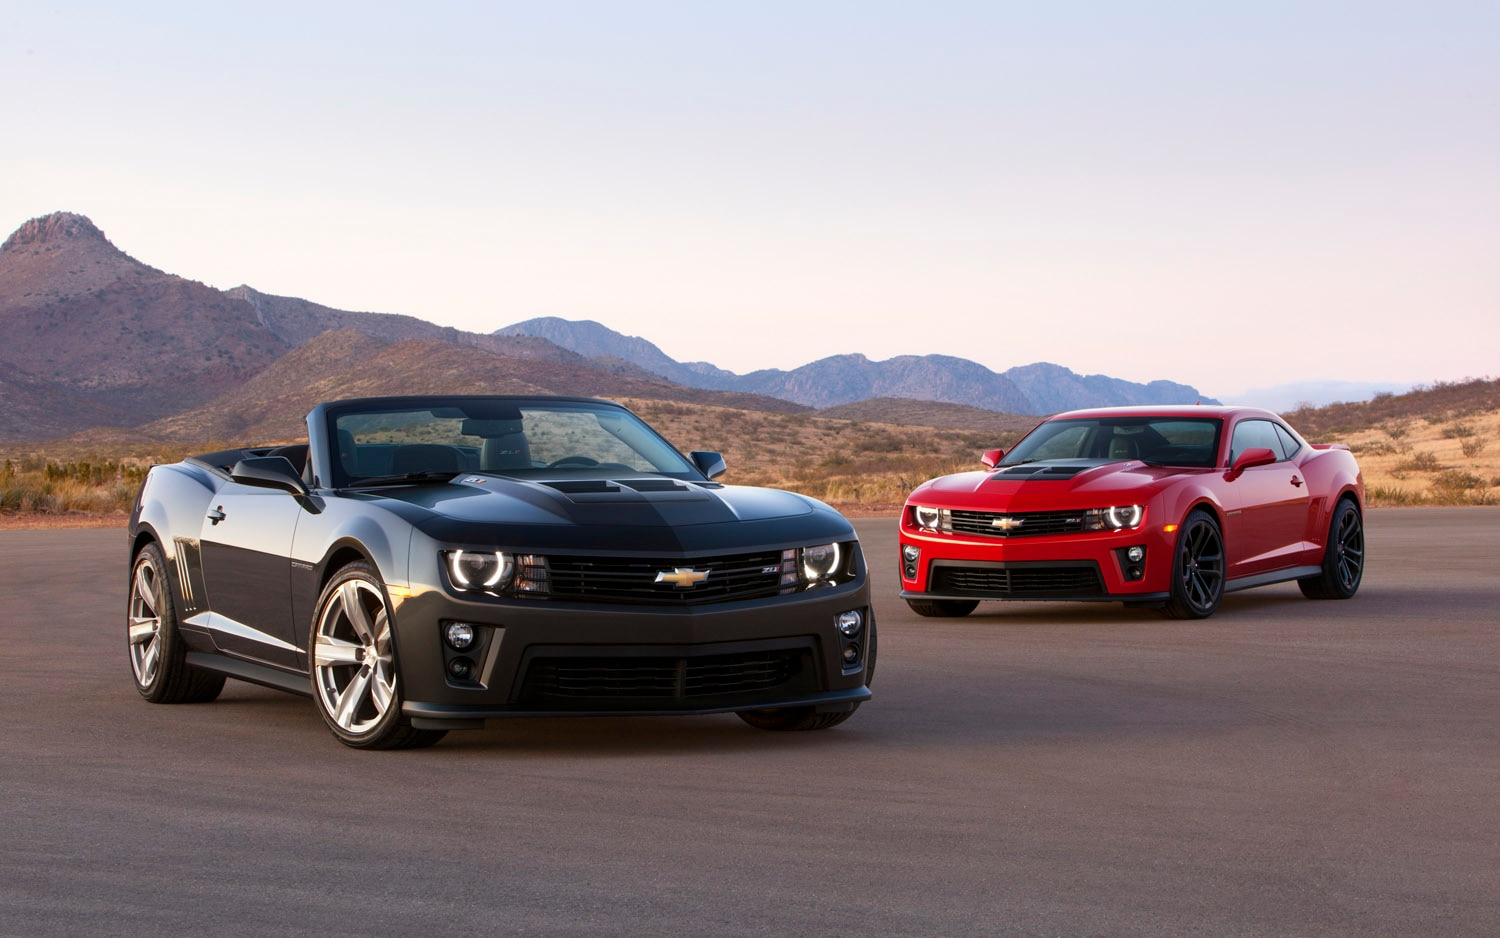 2013 Chevrolet Camaro ZL1 Coupe And Convertible1